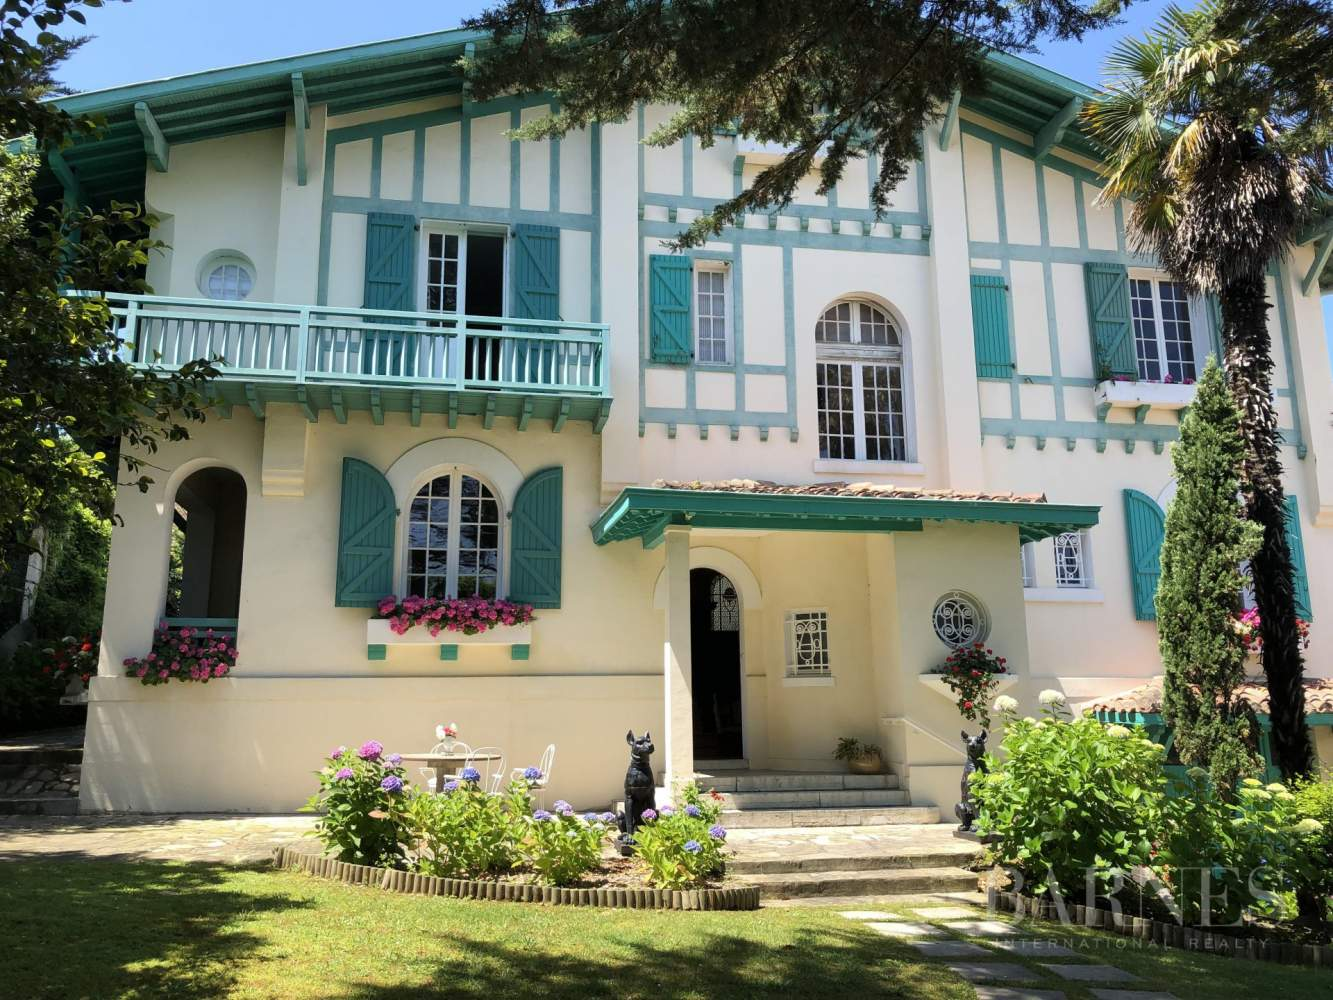 BIARRITZ, HOUSE WITH GARDEN AND POOL, 6 BEDROOMS, HEATED POOL. 10 PEOPLE. picture 1